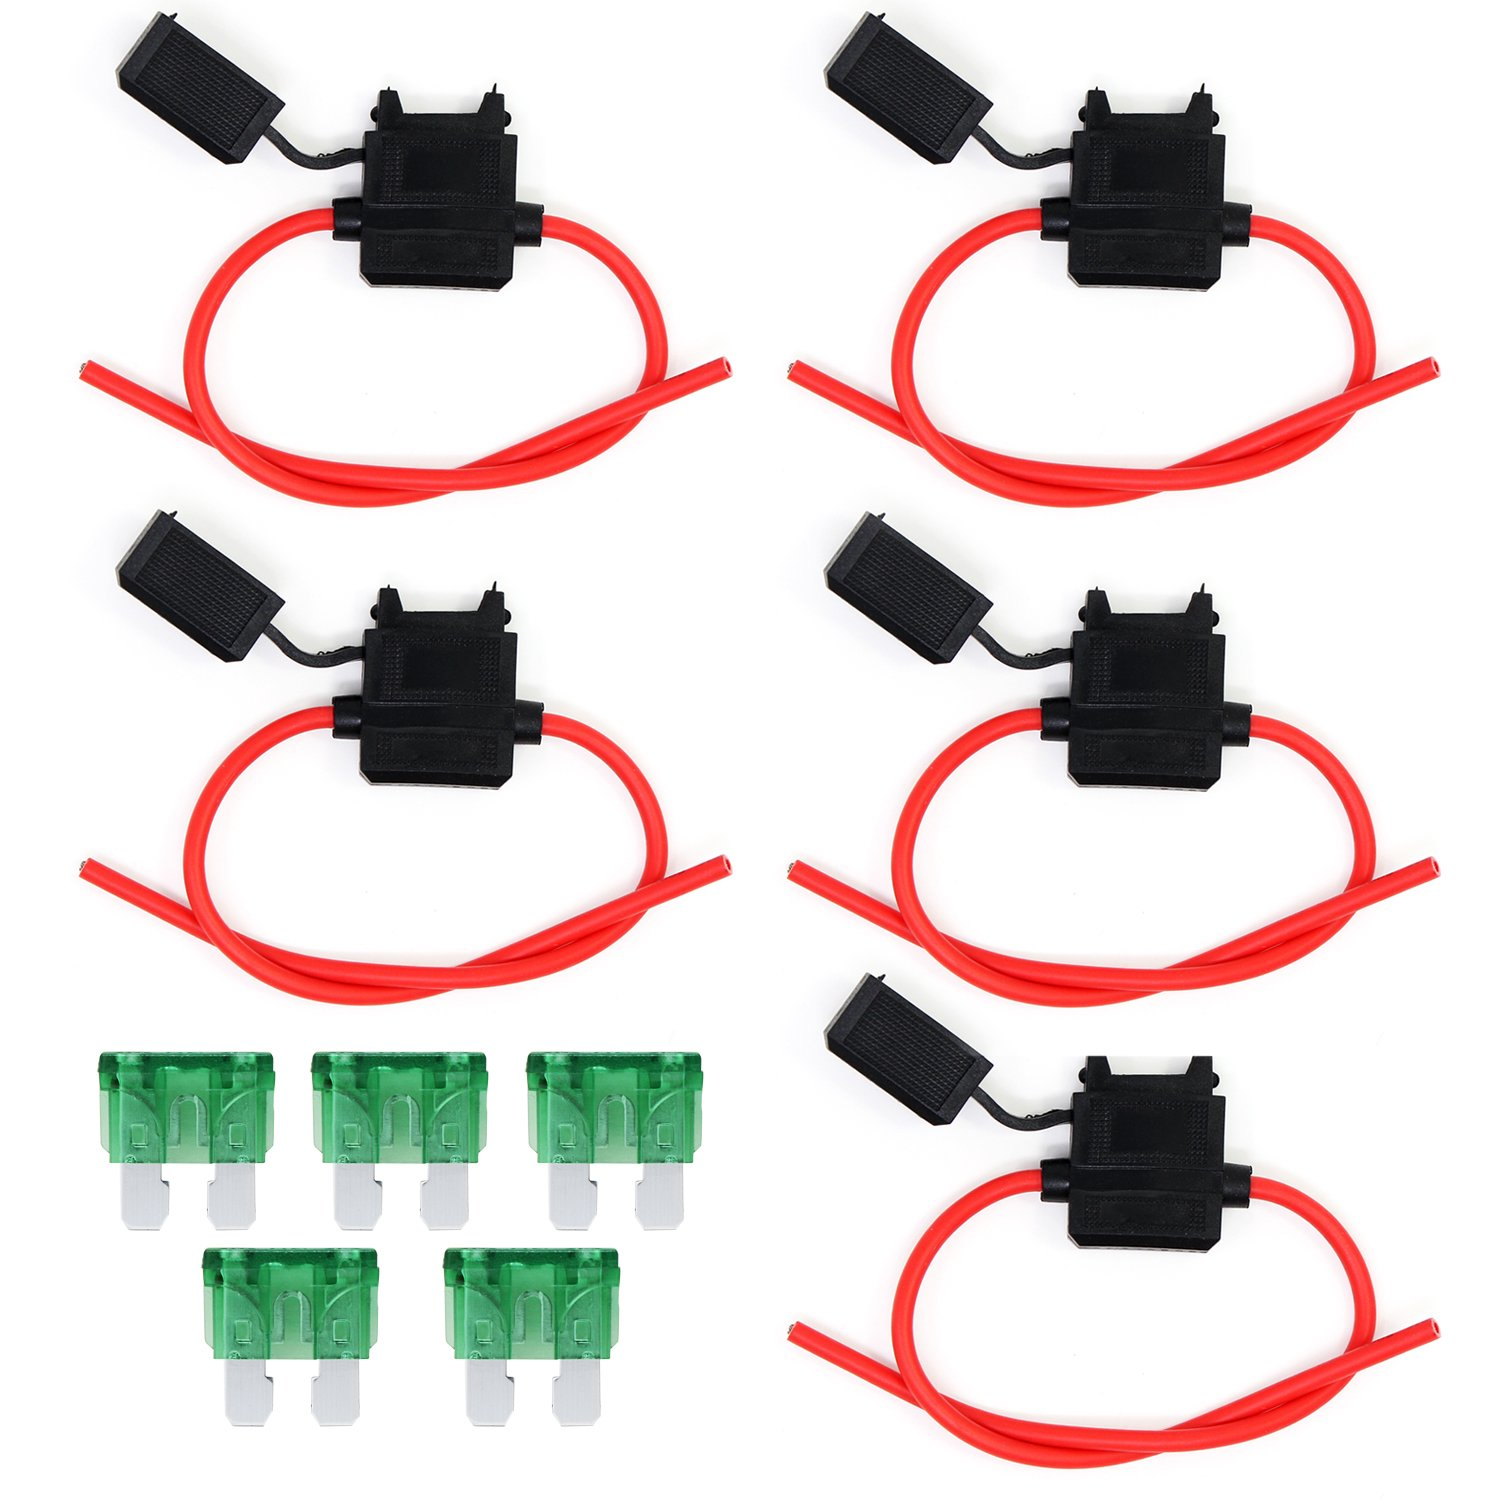 OcrFuse Holder 12Guage Waterproof Automotive Blade Fuse Holder with 30AMP Fuse 10PCS (12Guage)